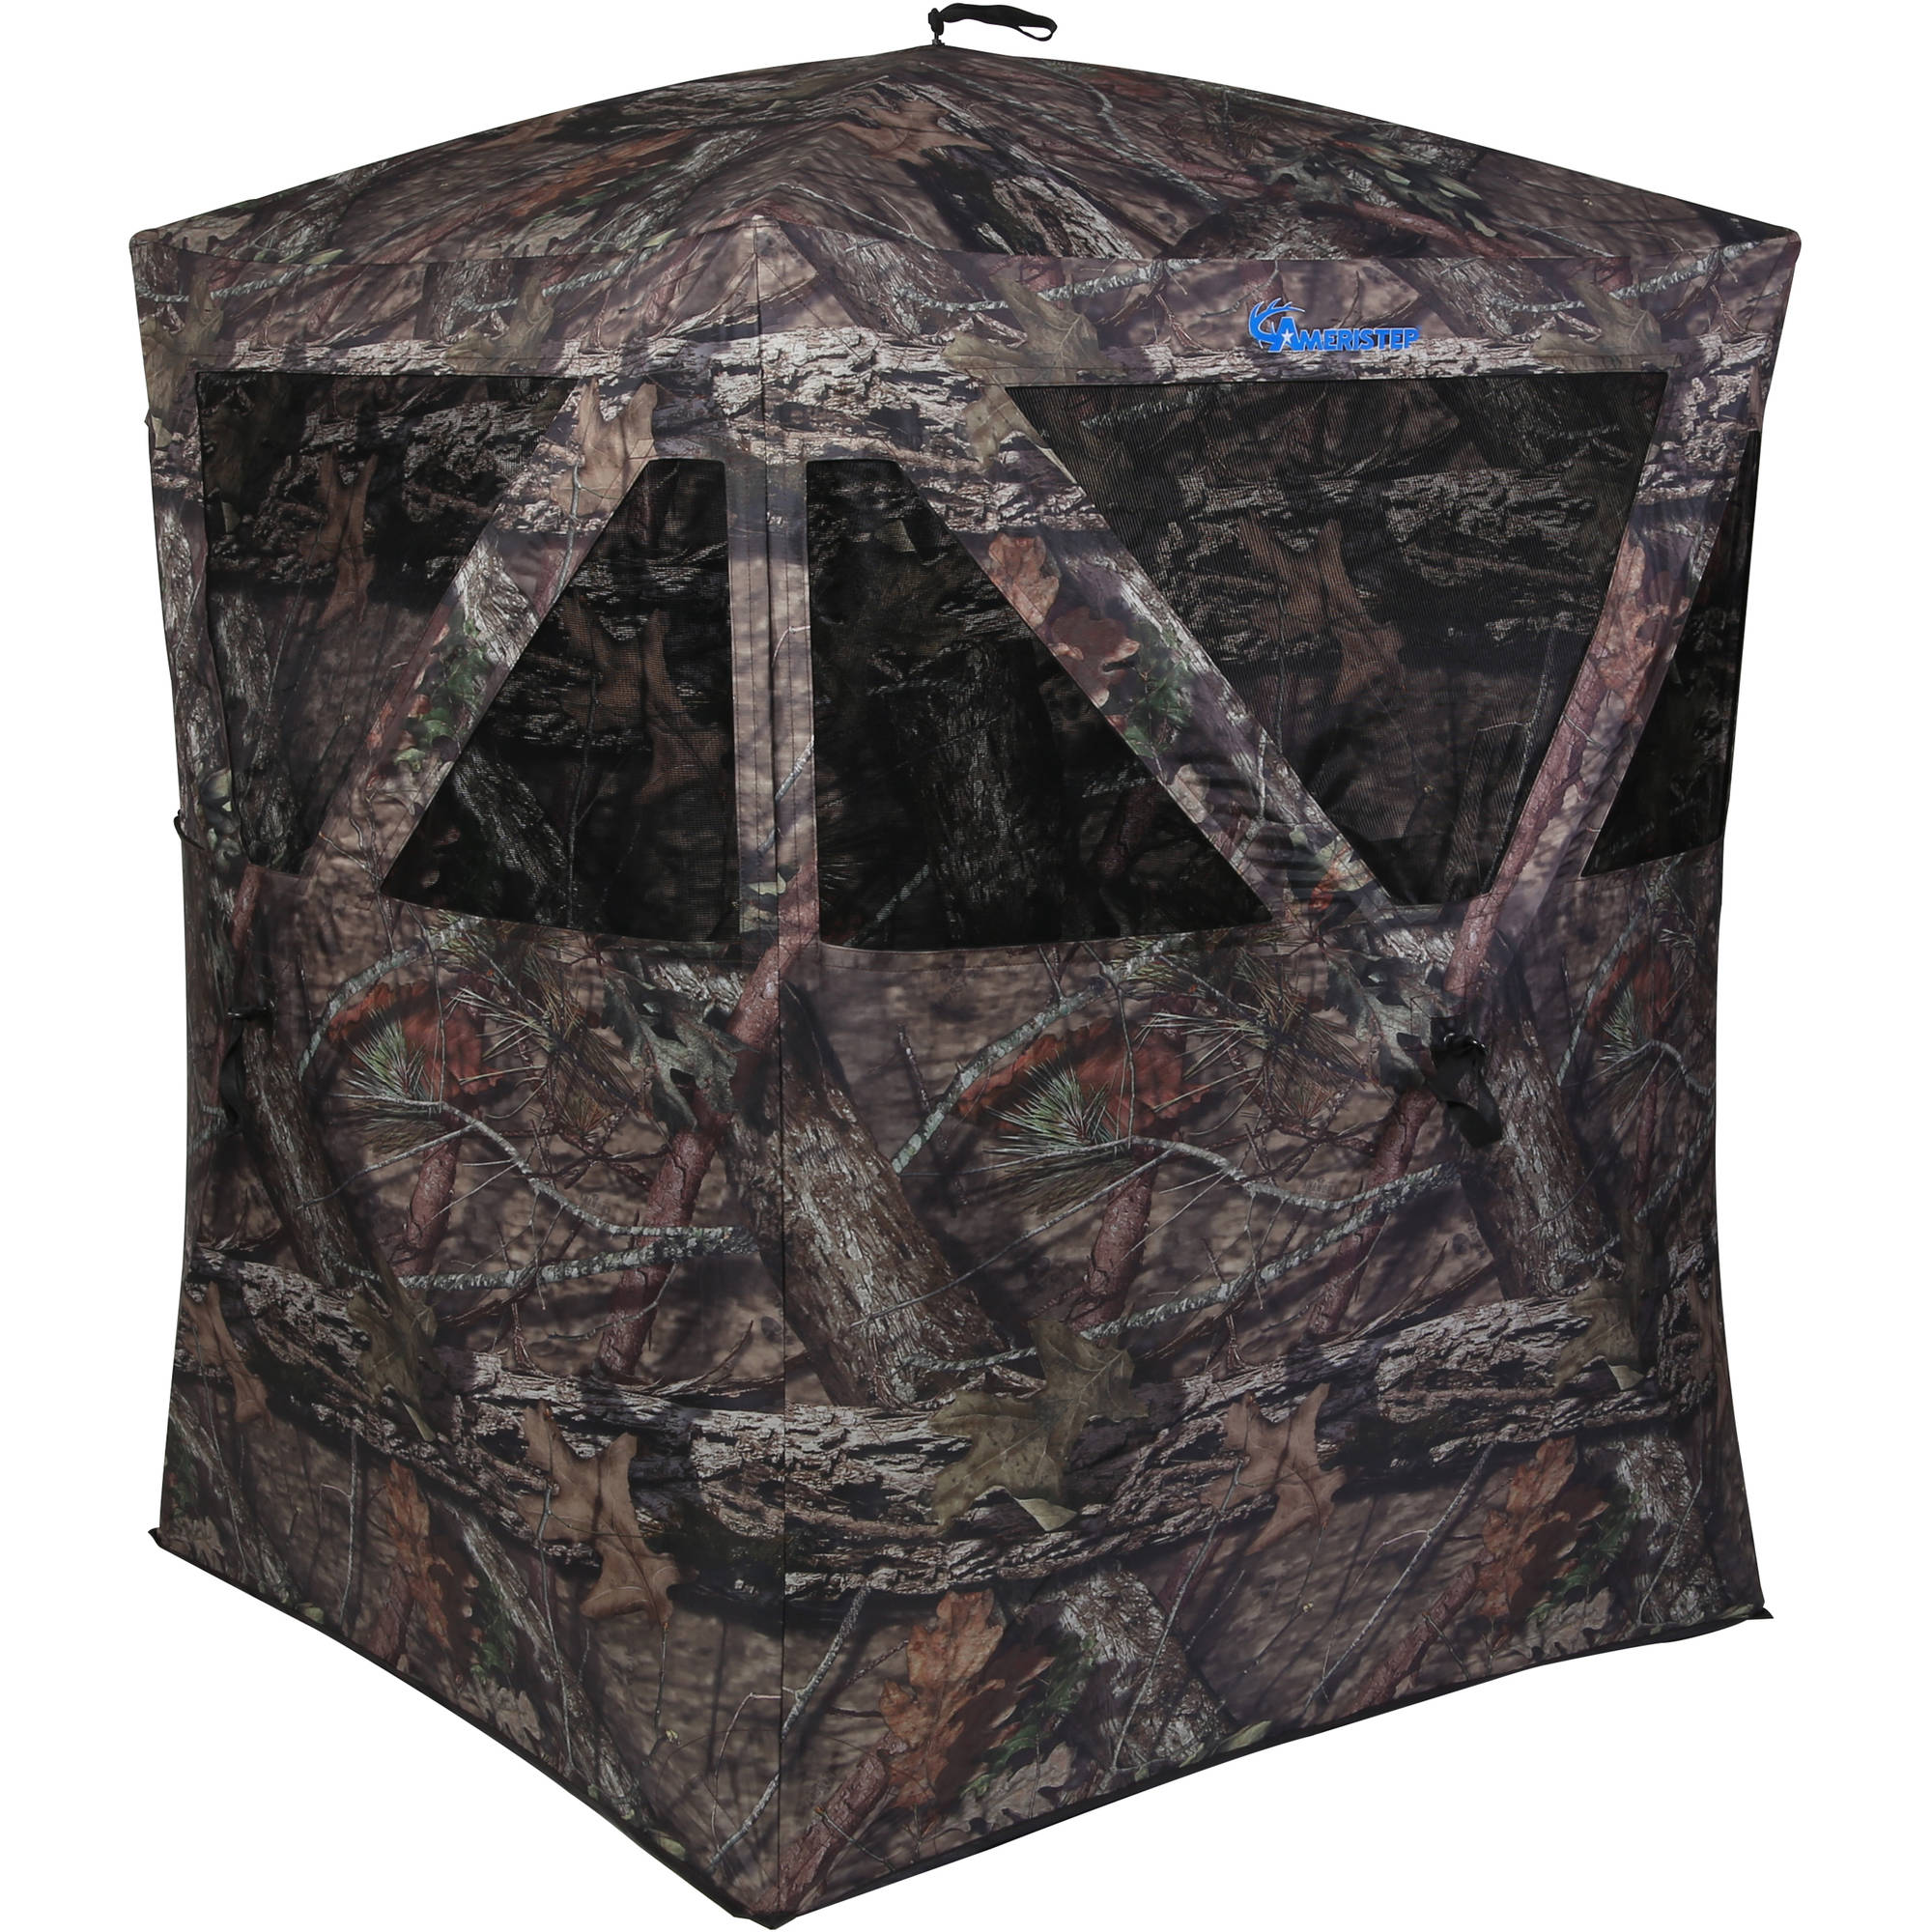 Backwoods Hunting Blind, Mossy Oak Camouflage Pattern